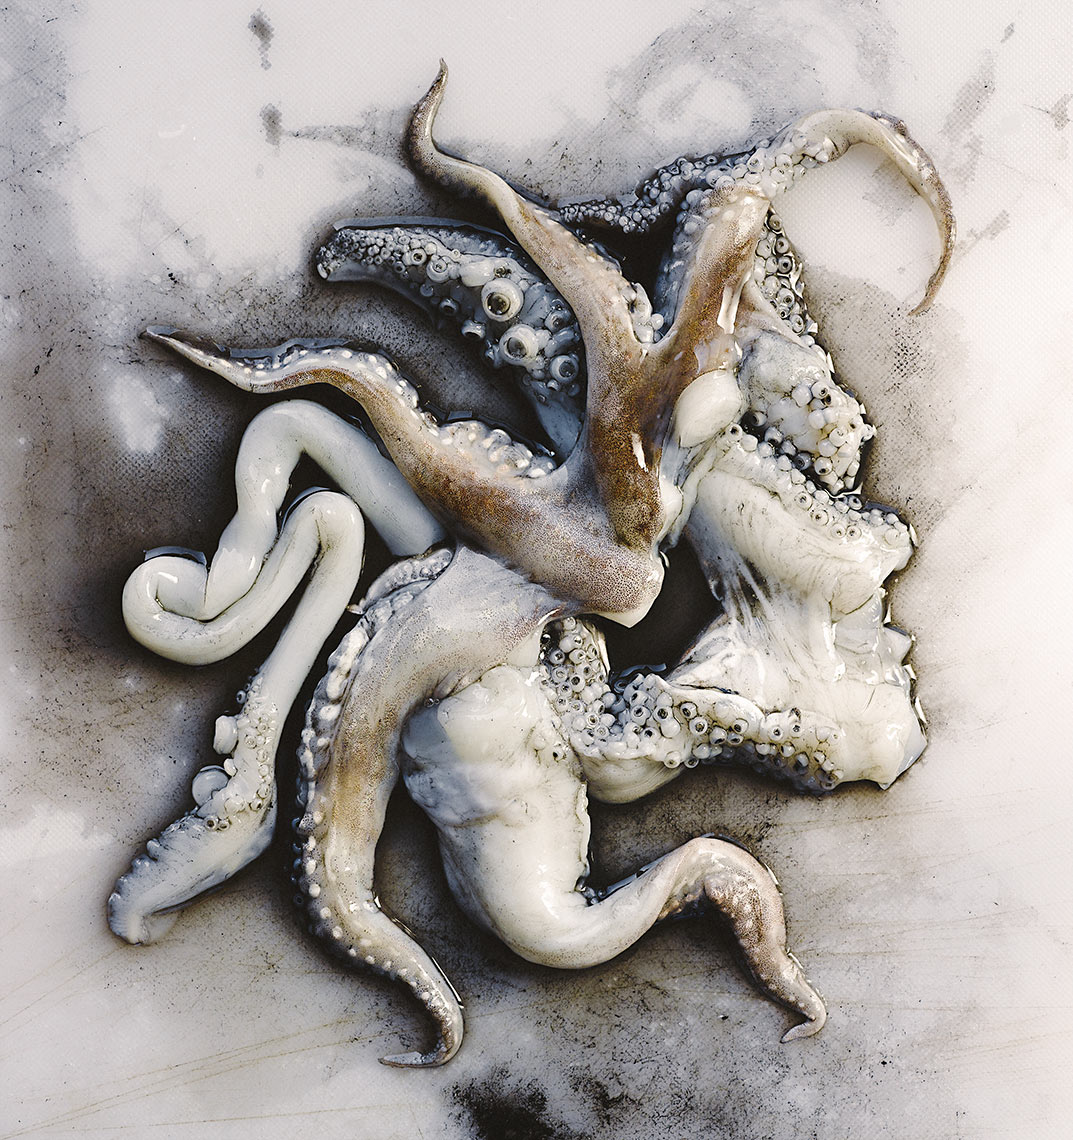 Cuttlefish | Colin Campbell - Food Photographer